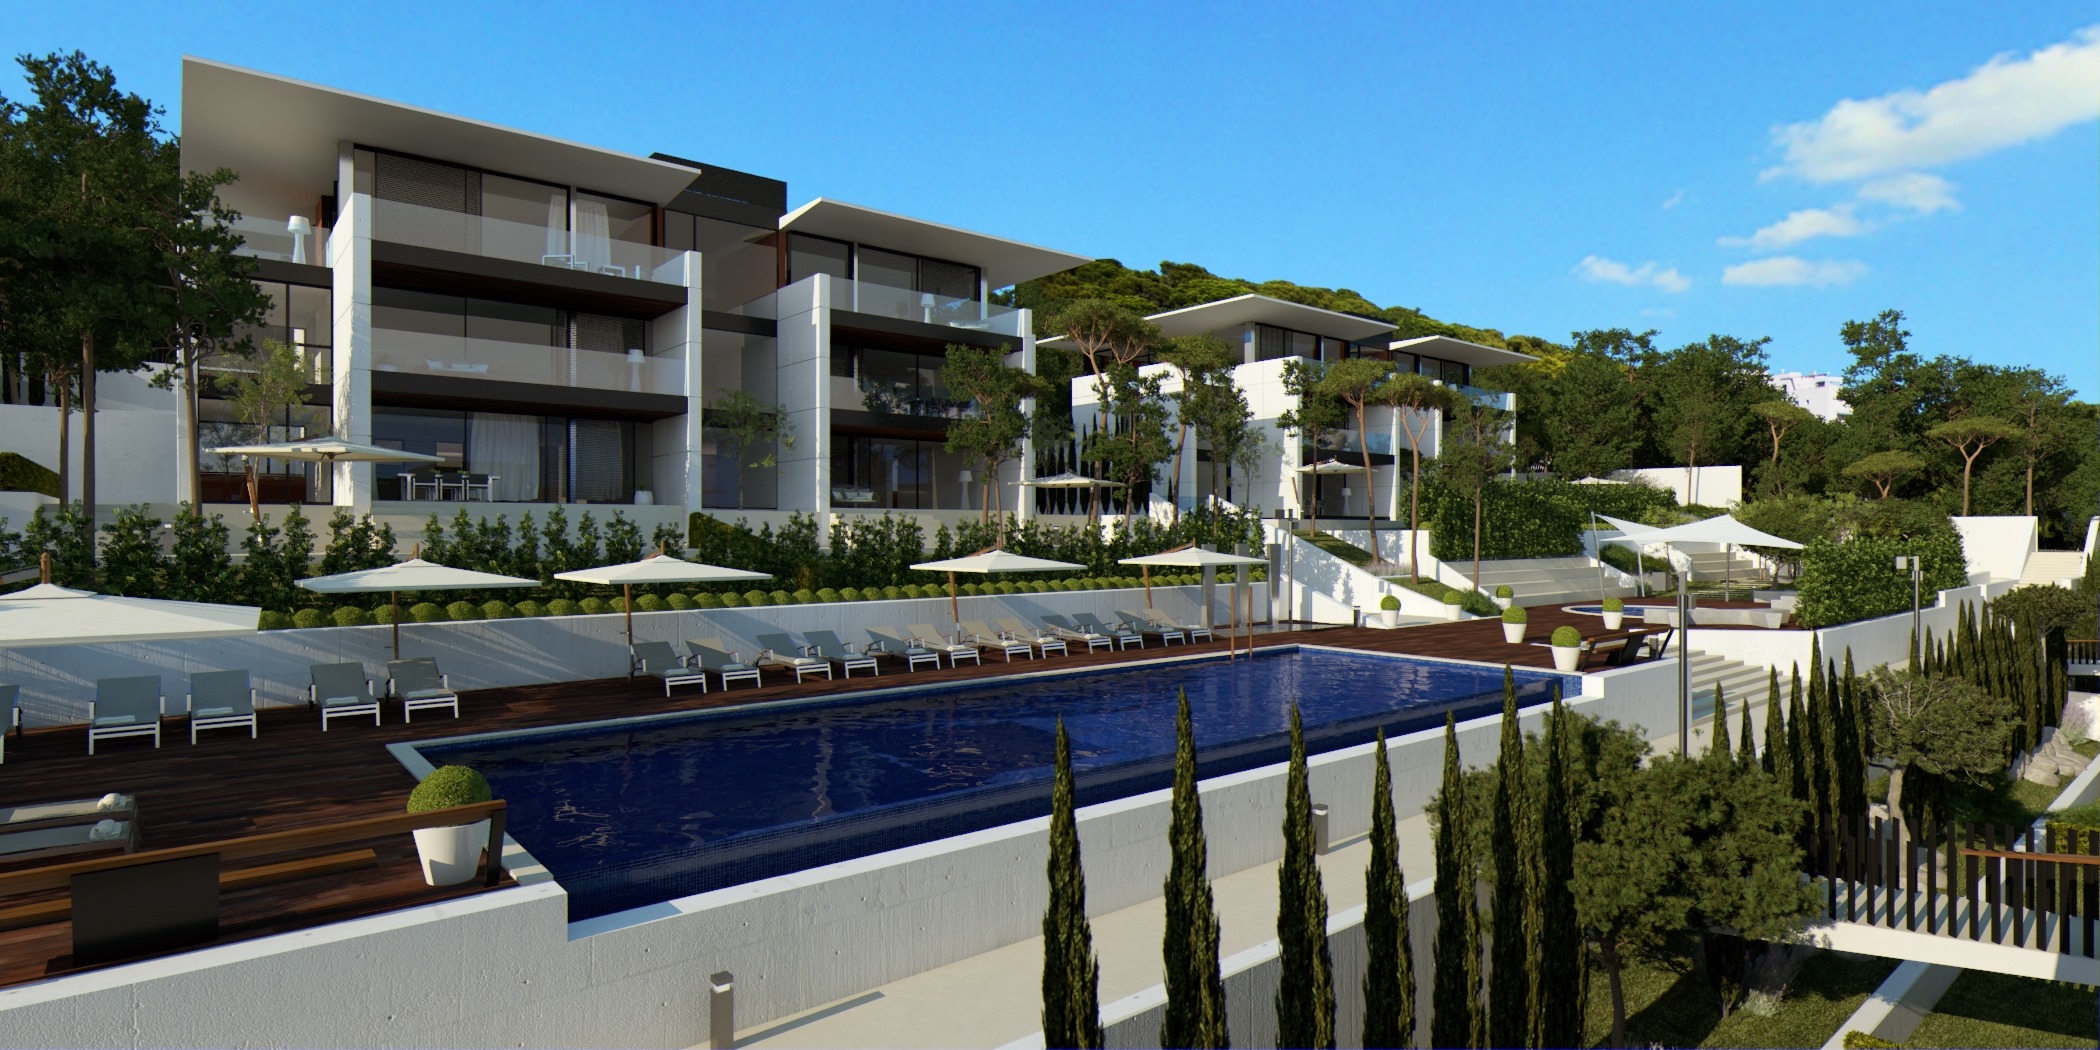 Căn hộ vì Bán tại Ground floor with private garden in a new exclusive development Playa De Aro, Costa Brava, 17250 Tây Ban Nha